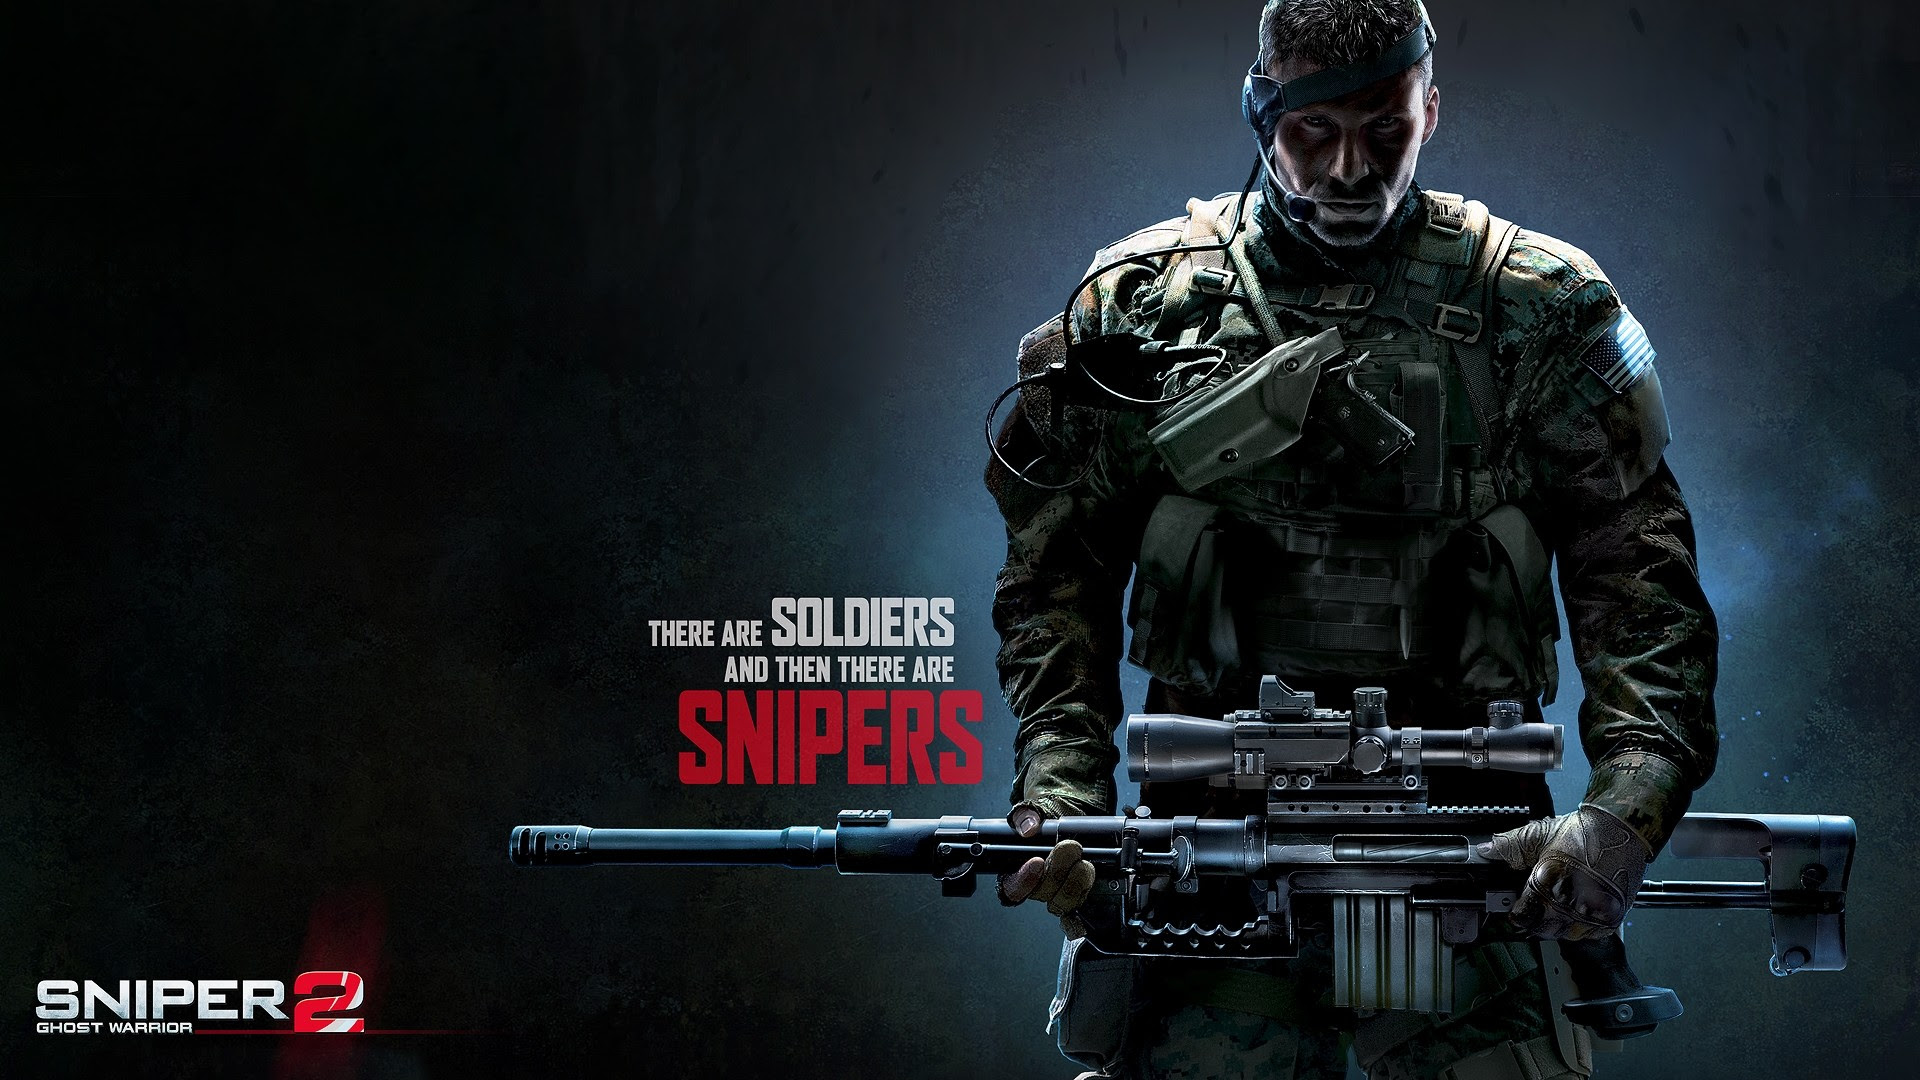 Game Wallpapers 1366x768 74 Images